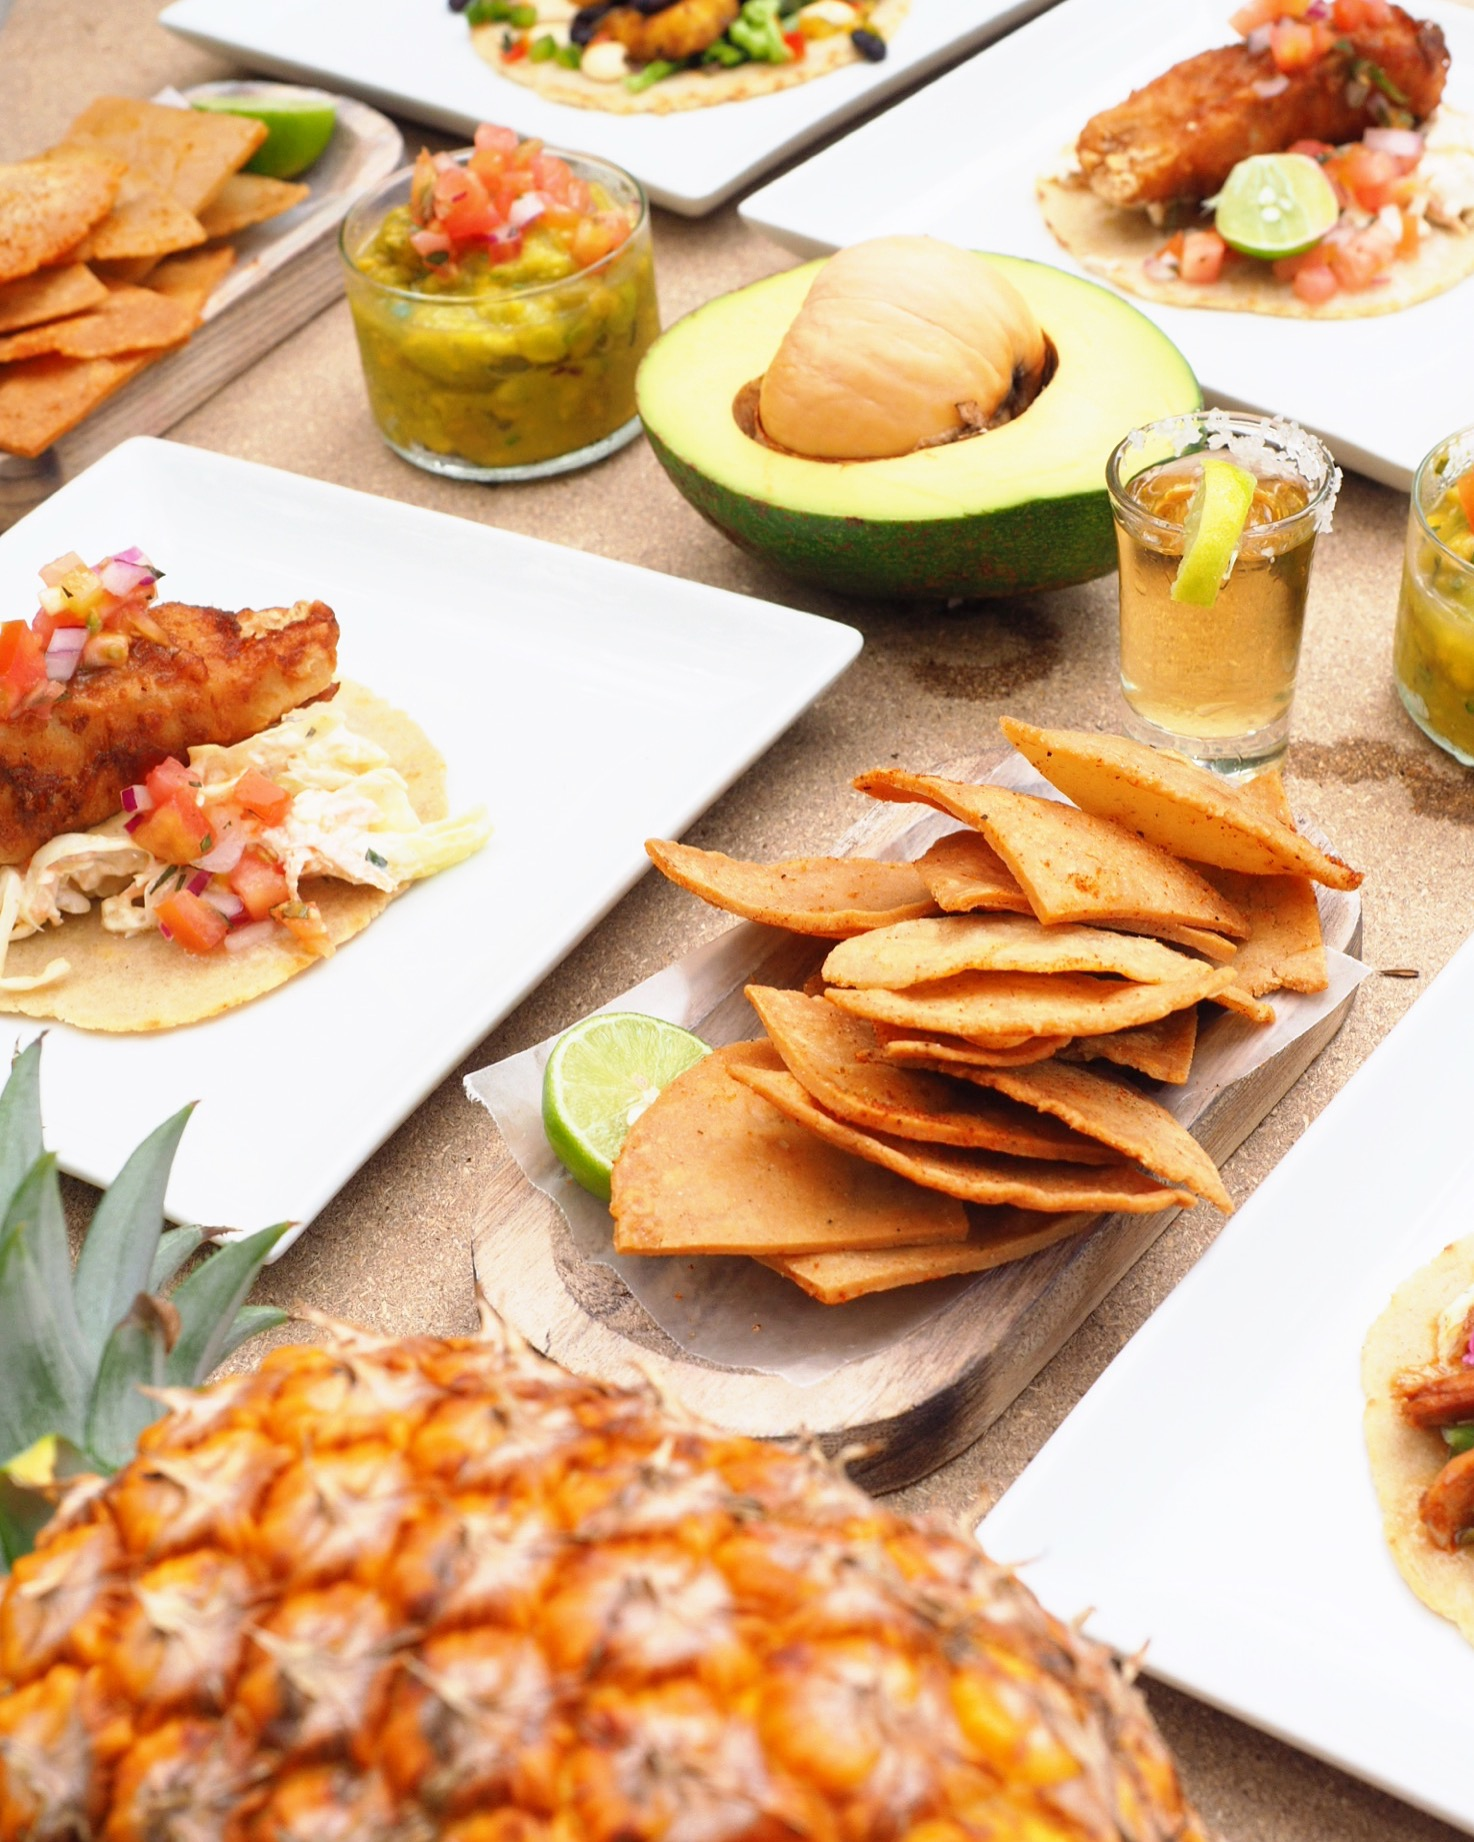 Tacos & Tequila - Serving up delicious fish tacos, kimchi & avocado tacos, fresh pico de galo and hand cut tortillas!